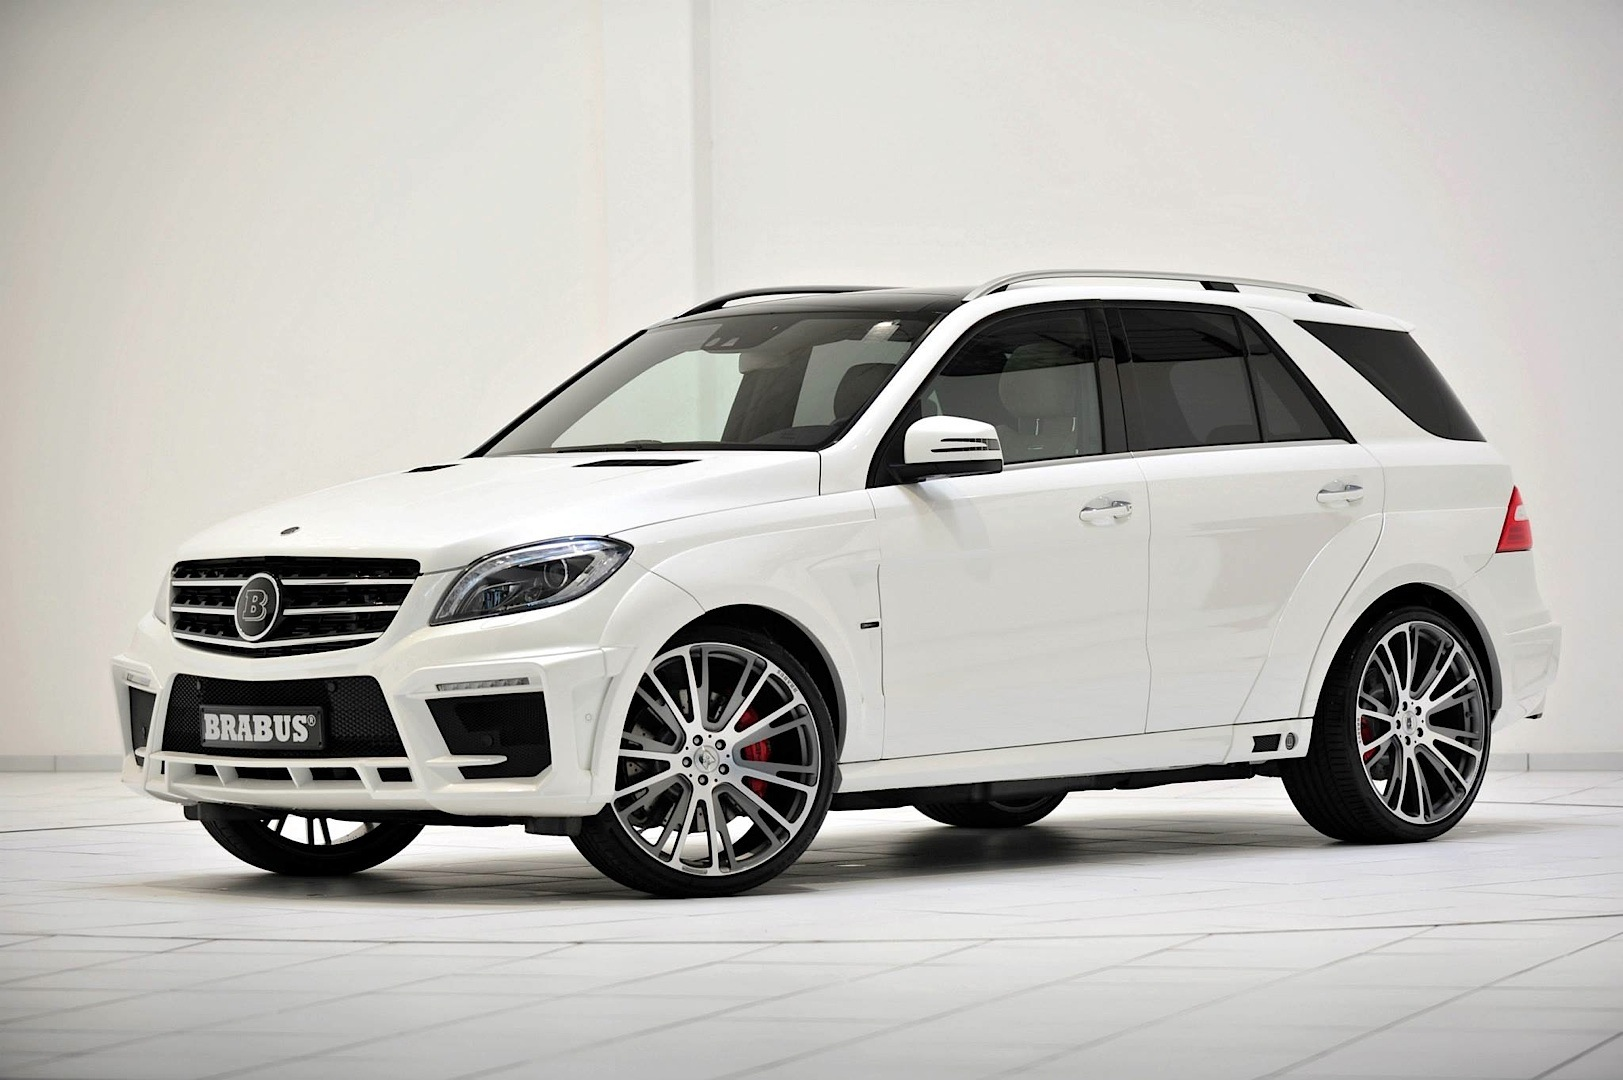 Brabus unleashes 700 hp mercedes benz ml 63 amg for Mercedes benz brabus amg